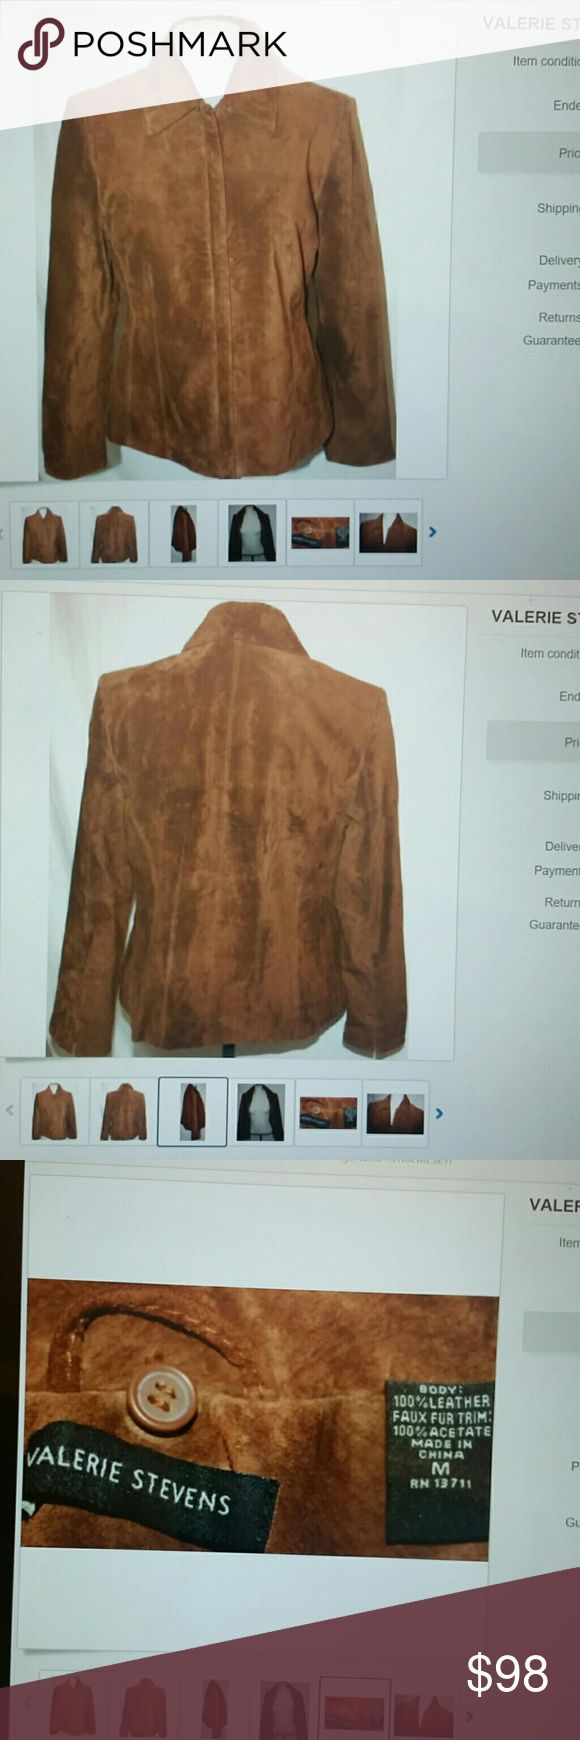 Valerie Stevens soft suede leather jacket coat M Like new no stains just Shadows color cognac Brown short trench coat Blazer suede leather Valerie Stevens Jackets & Coats Pea Coats